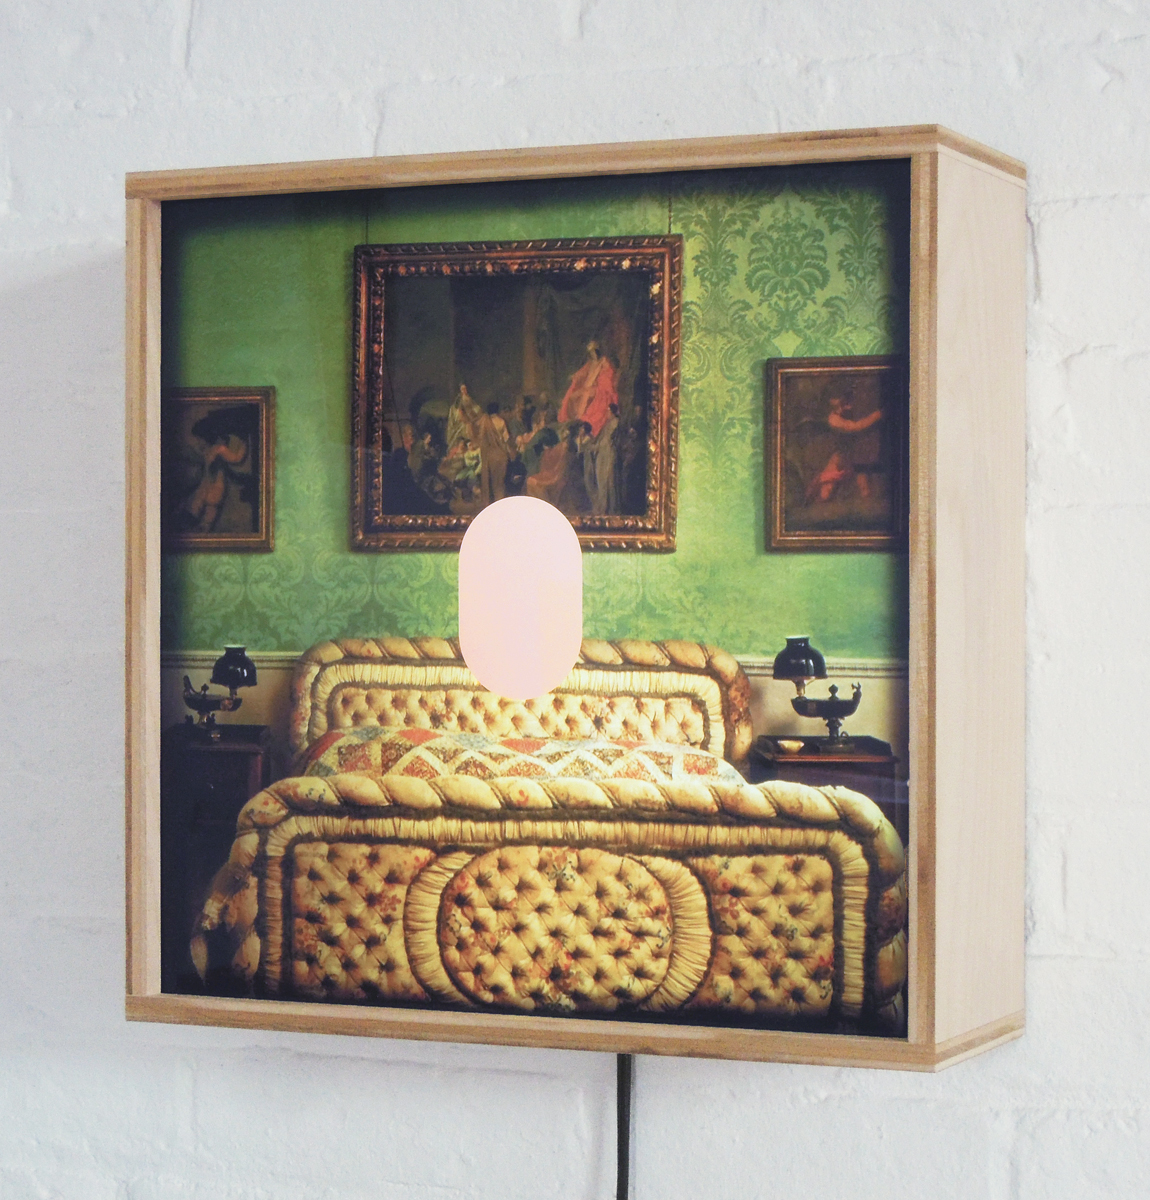 A plywood lightbox contains an image of an opulent bedroom and a pink oval.